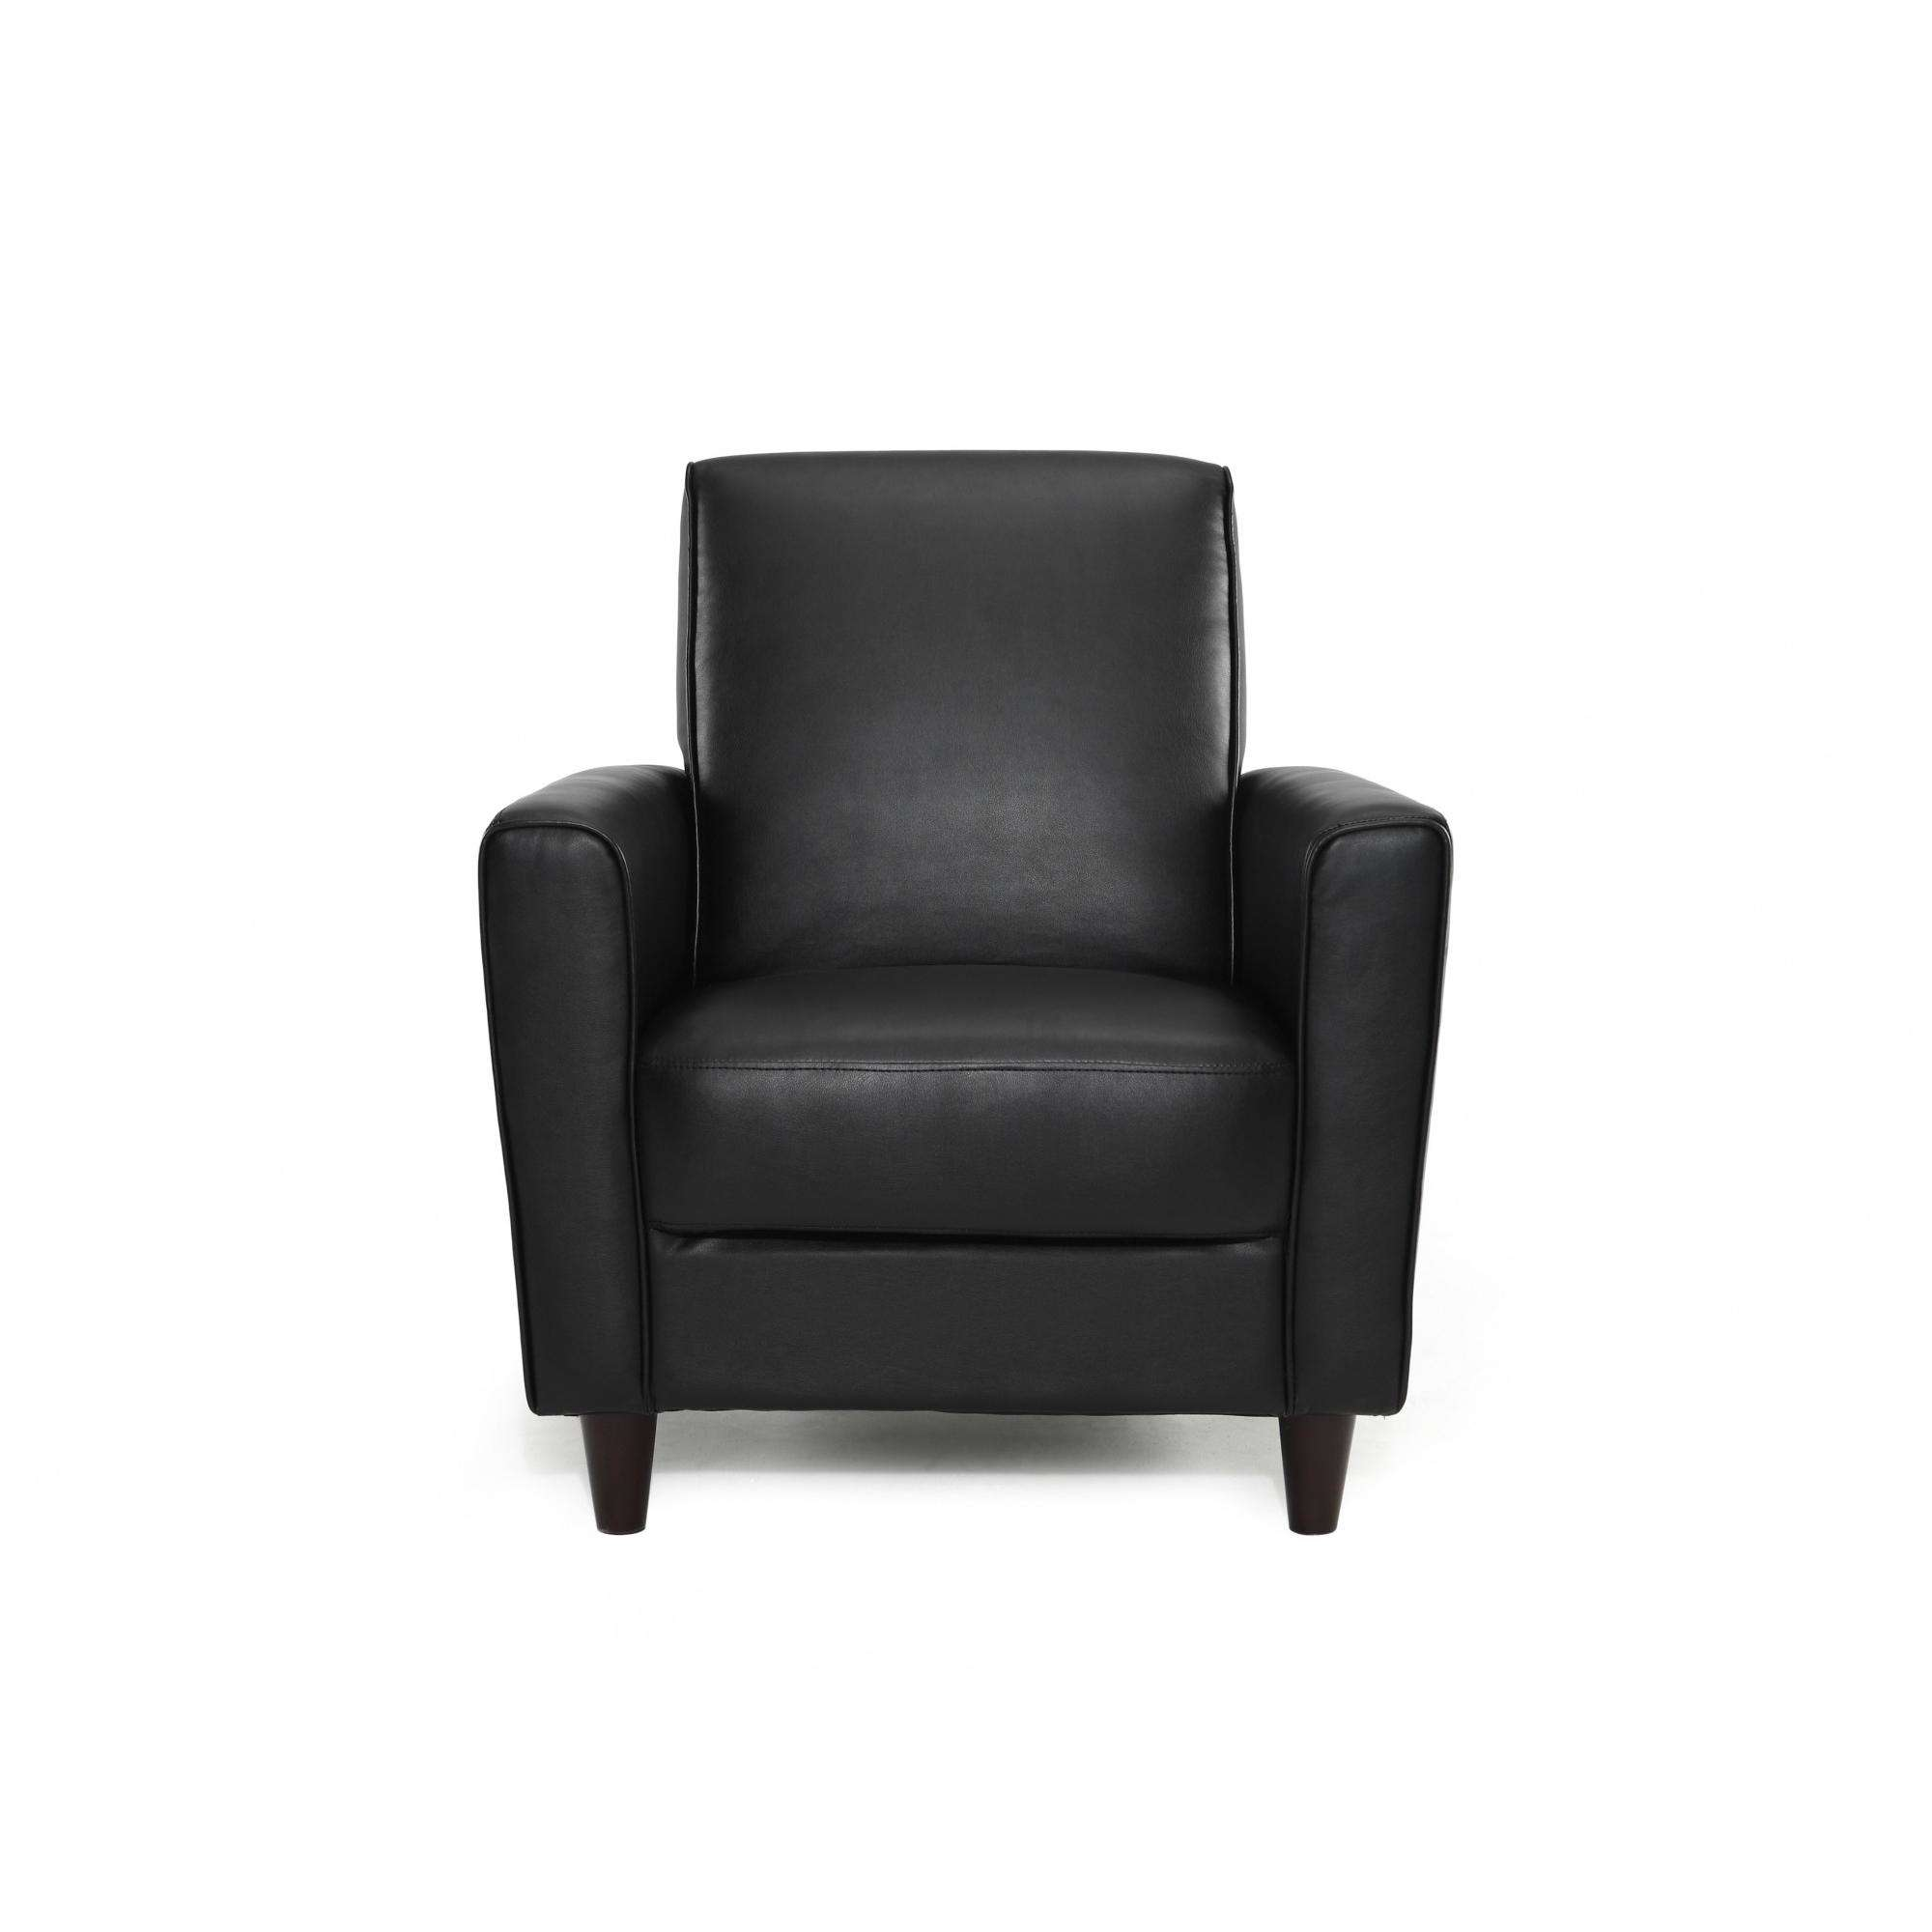 Inspiring Black Accent Chair Plans Free